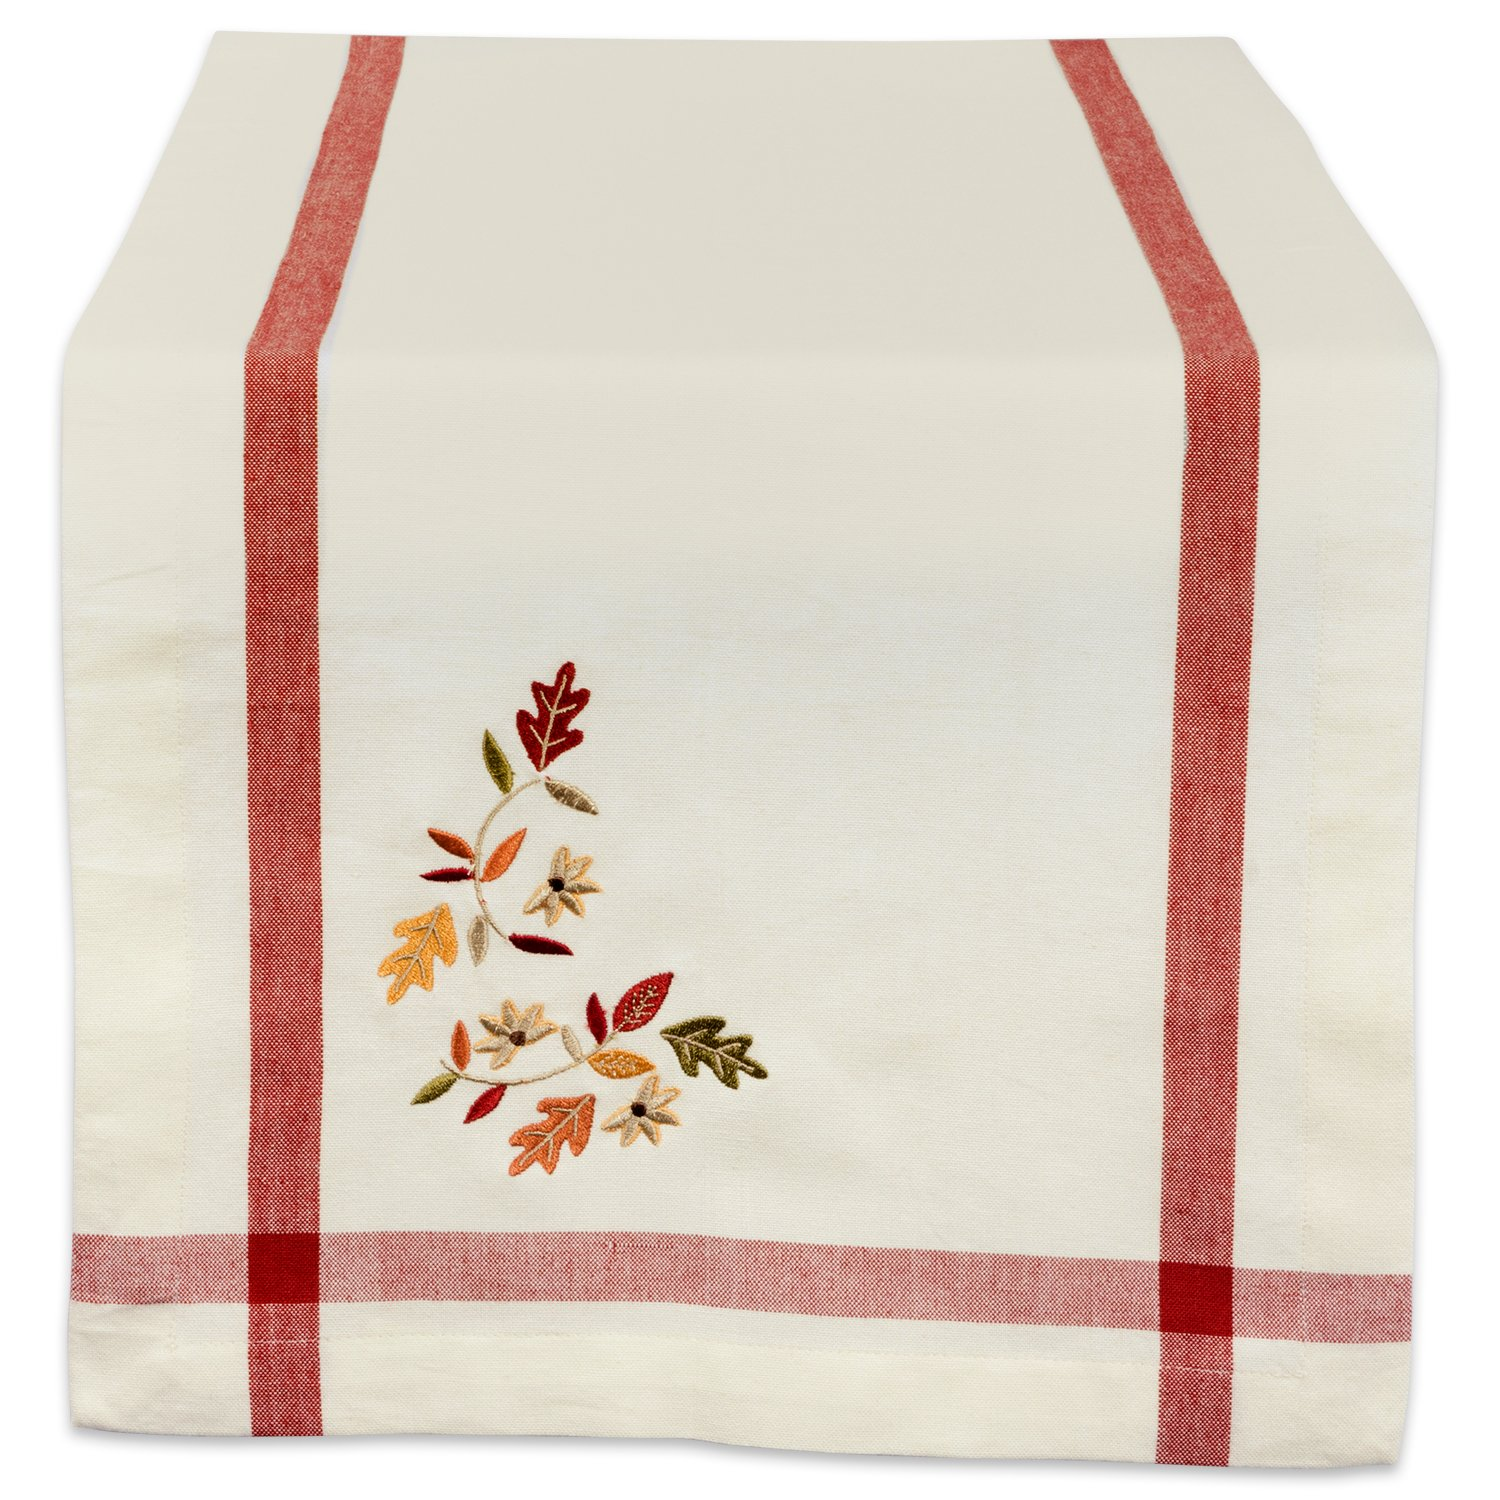 DII 14x108'' Cotton Table Runner, Cream with Embroidered Fall Leaves - Perfect for Fall, Thanksgiving, Special Occasions or Everyday Use